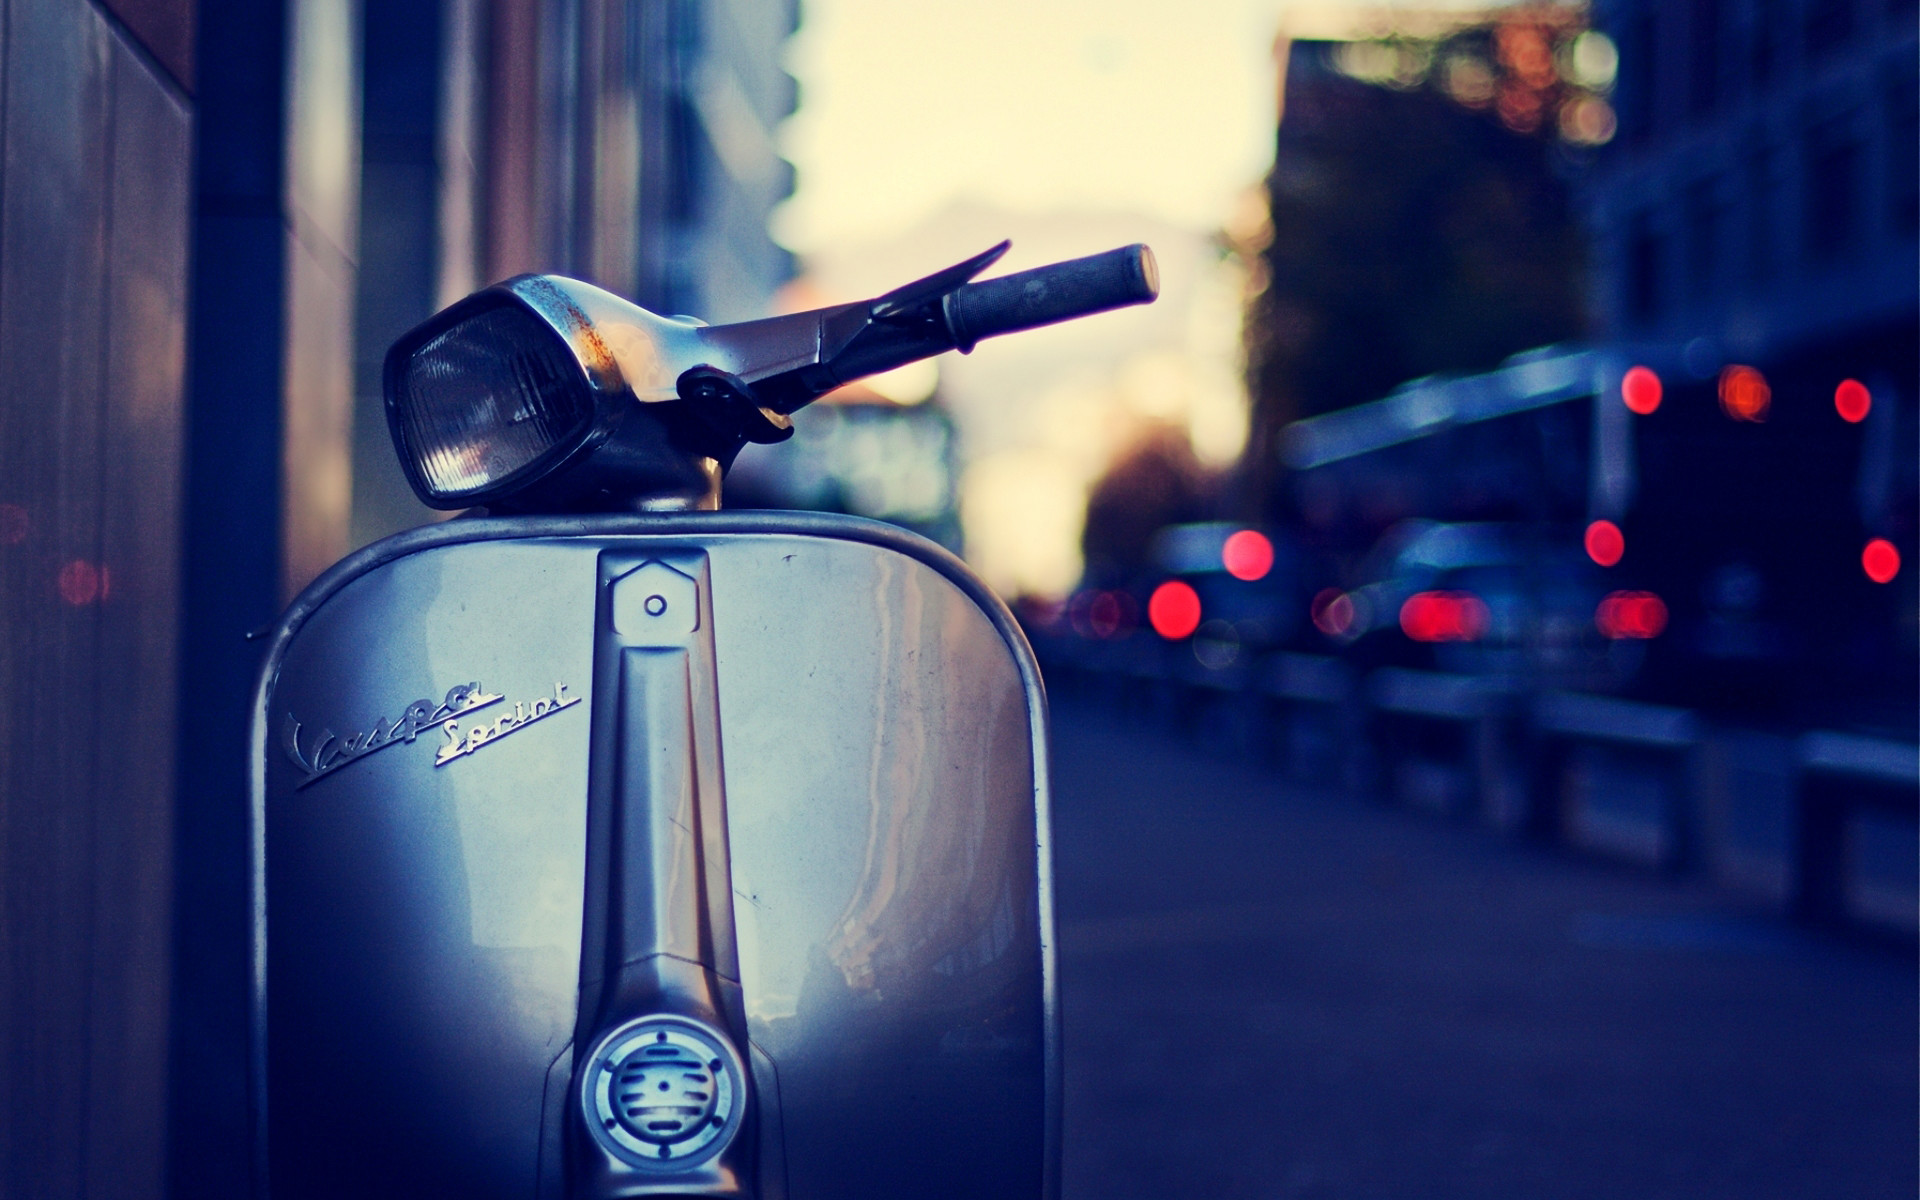 1920x1200 Vespa : Girl Vespa High Definition Wallpaper. . Vespa - Desktophdw.com